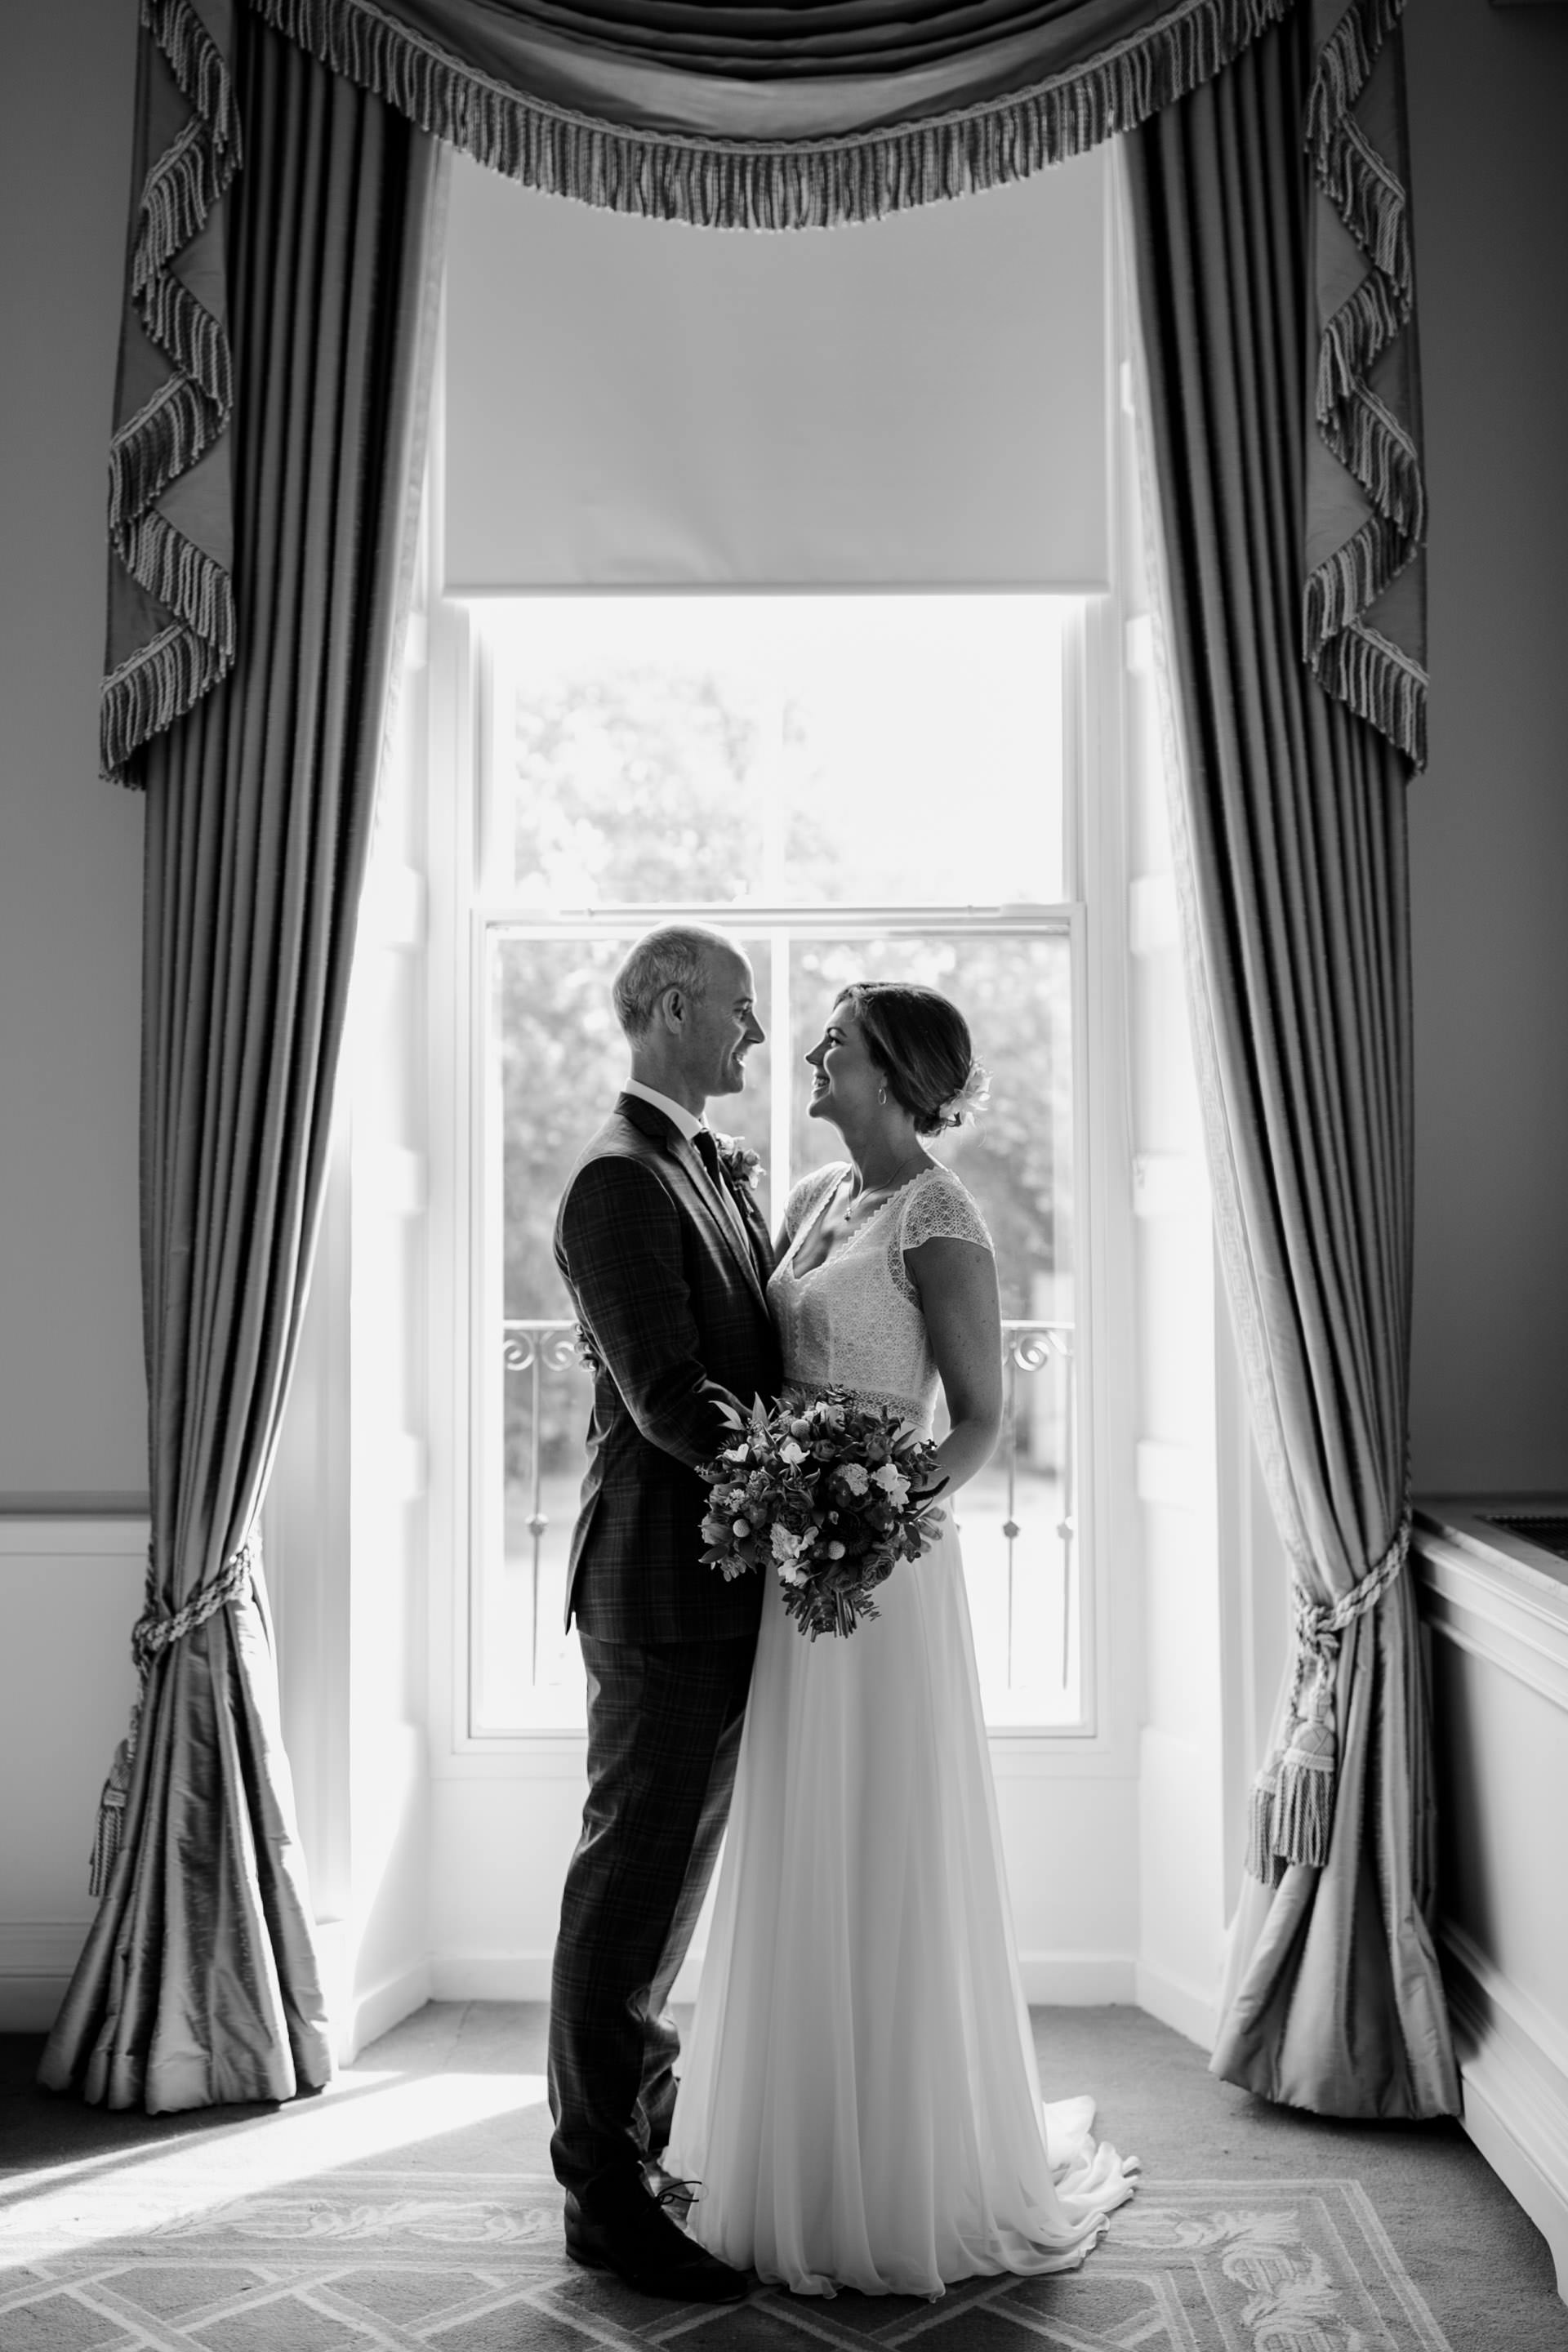 s&r_the_shelbourne_hotel_wedding_photographer_livia_figueiredo_12.jpg